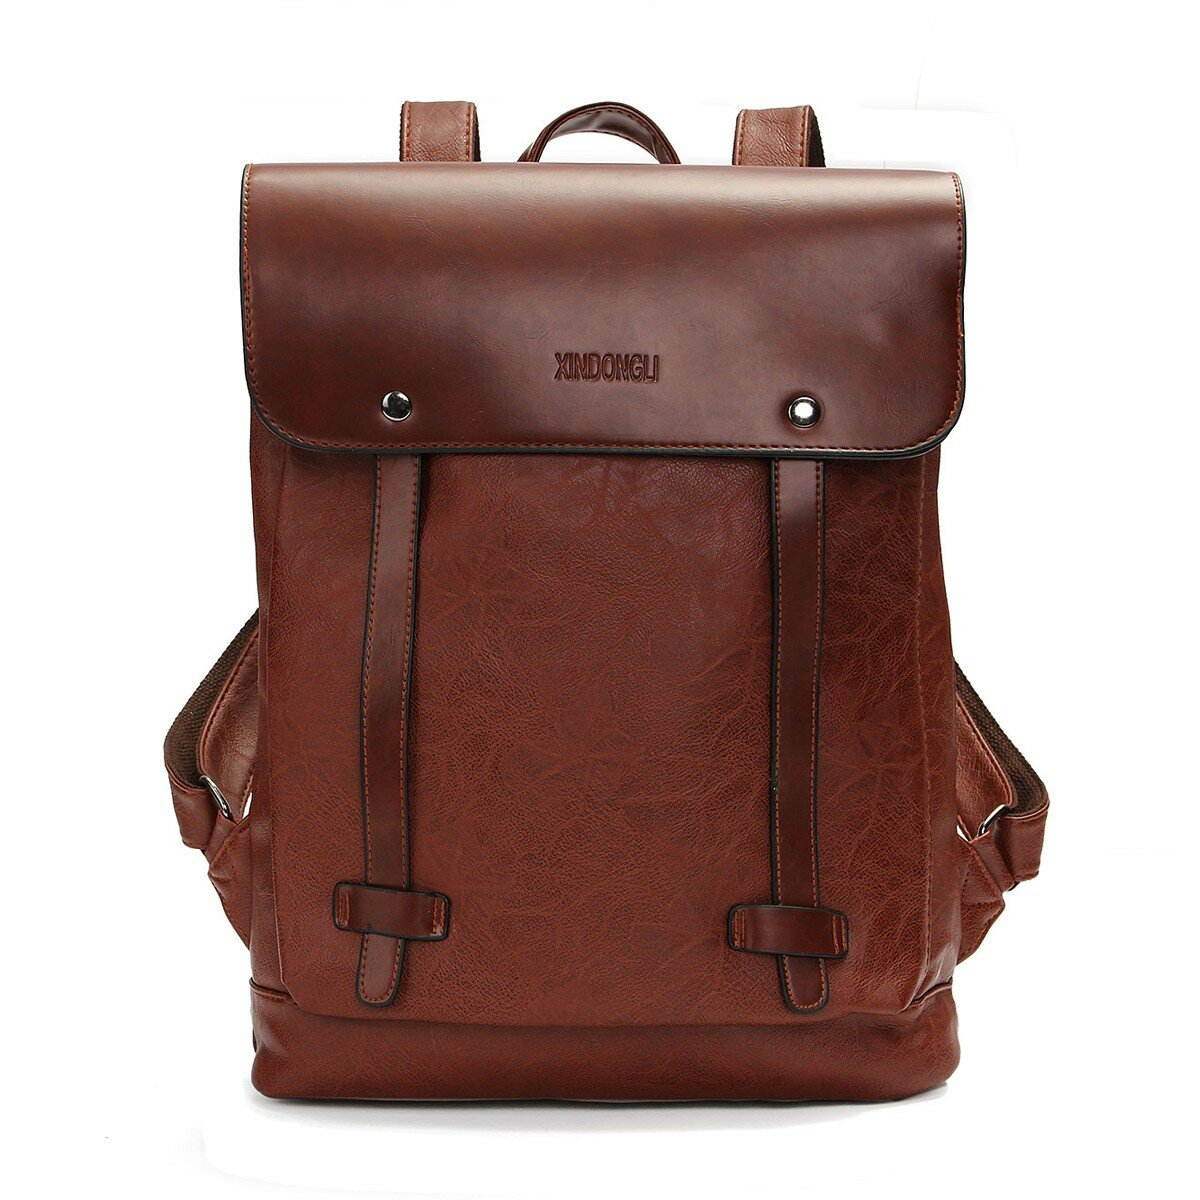 8a3ea35c2880 Men Women Vintage Backpack PU Leather Laptop bags School Bag Shoulder Bags